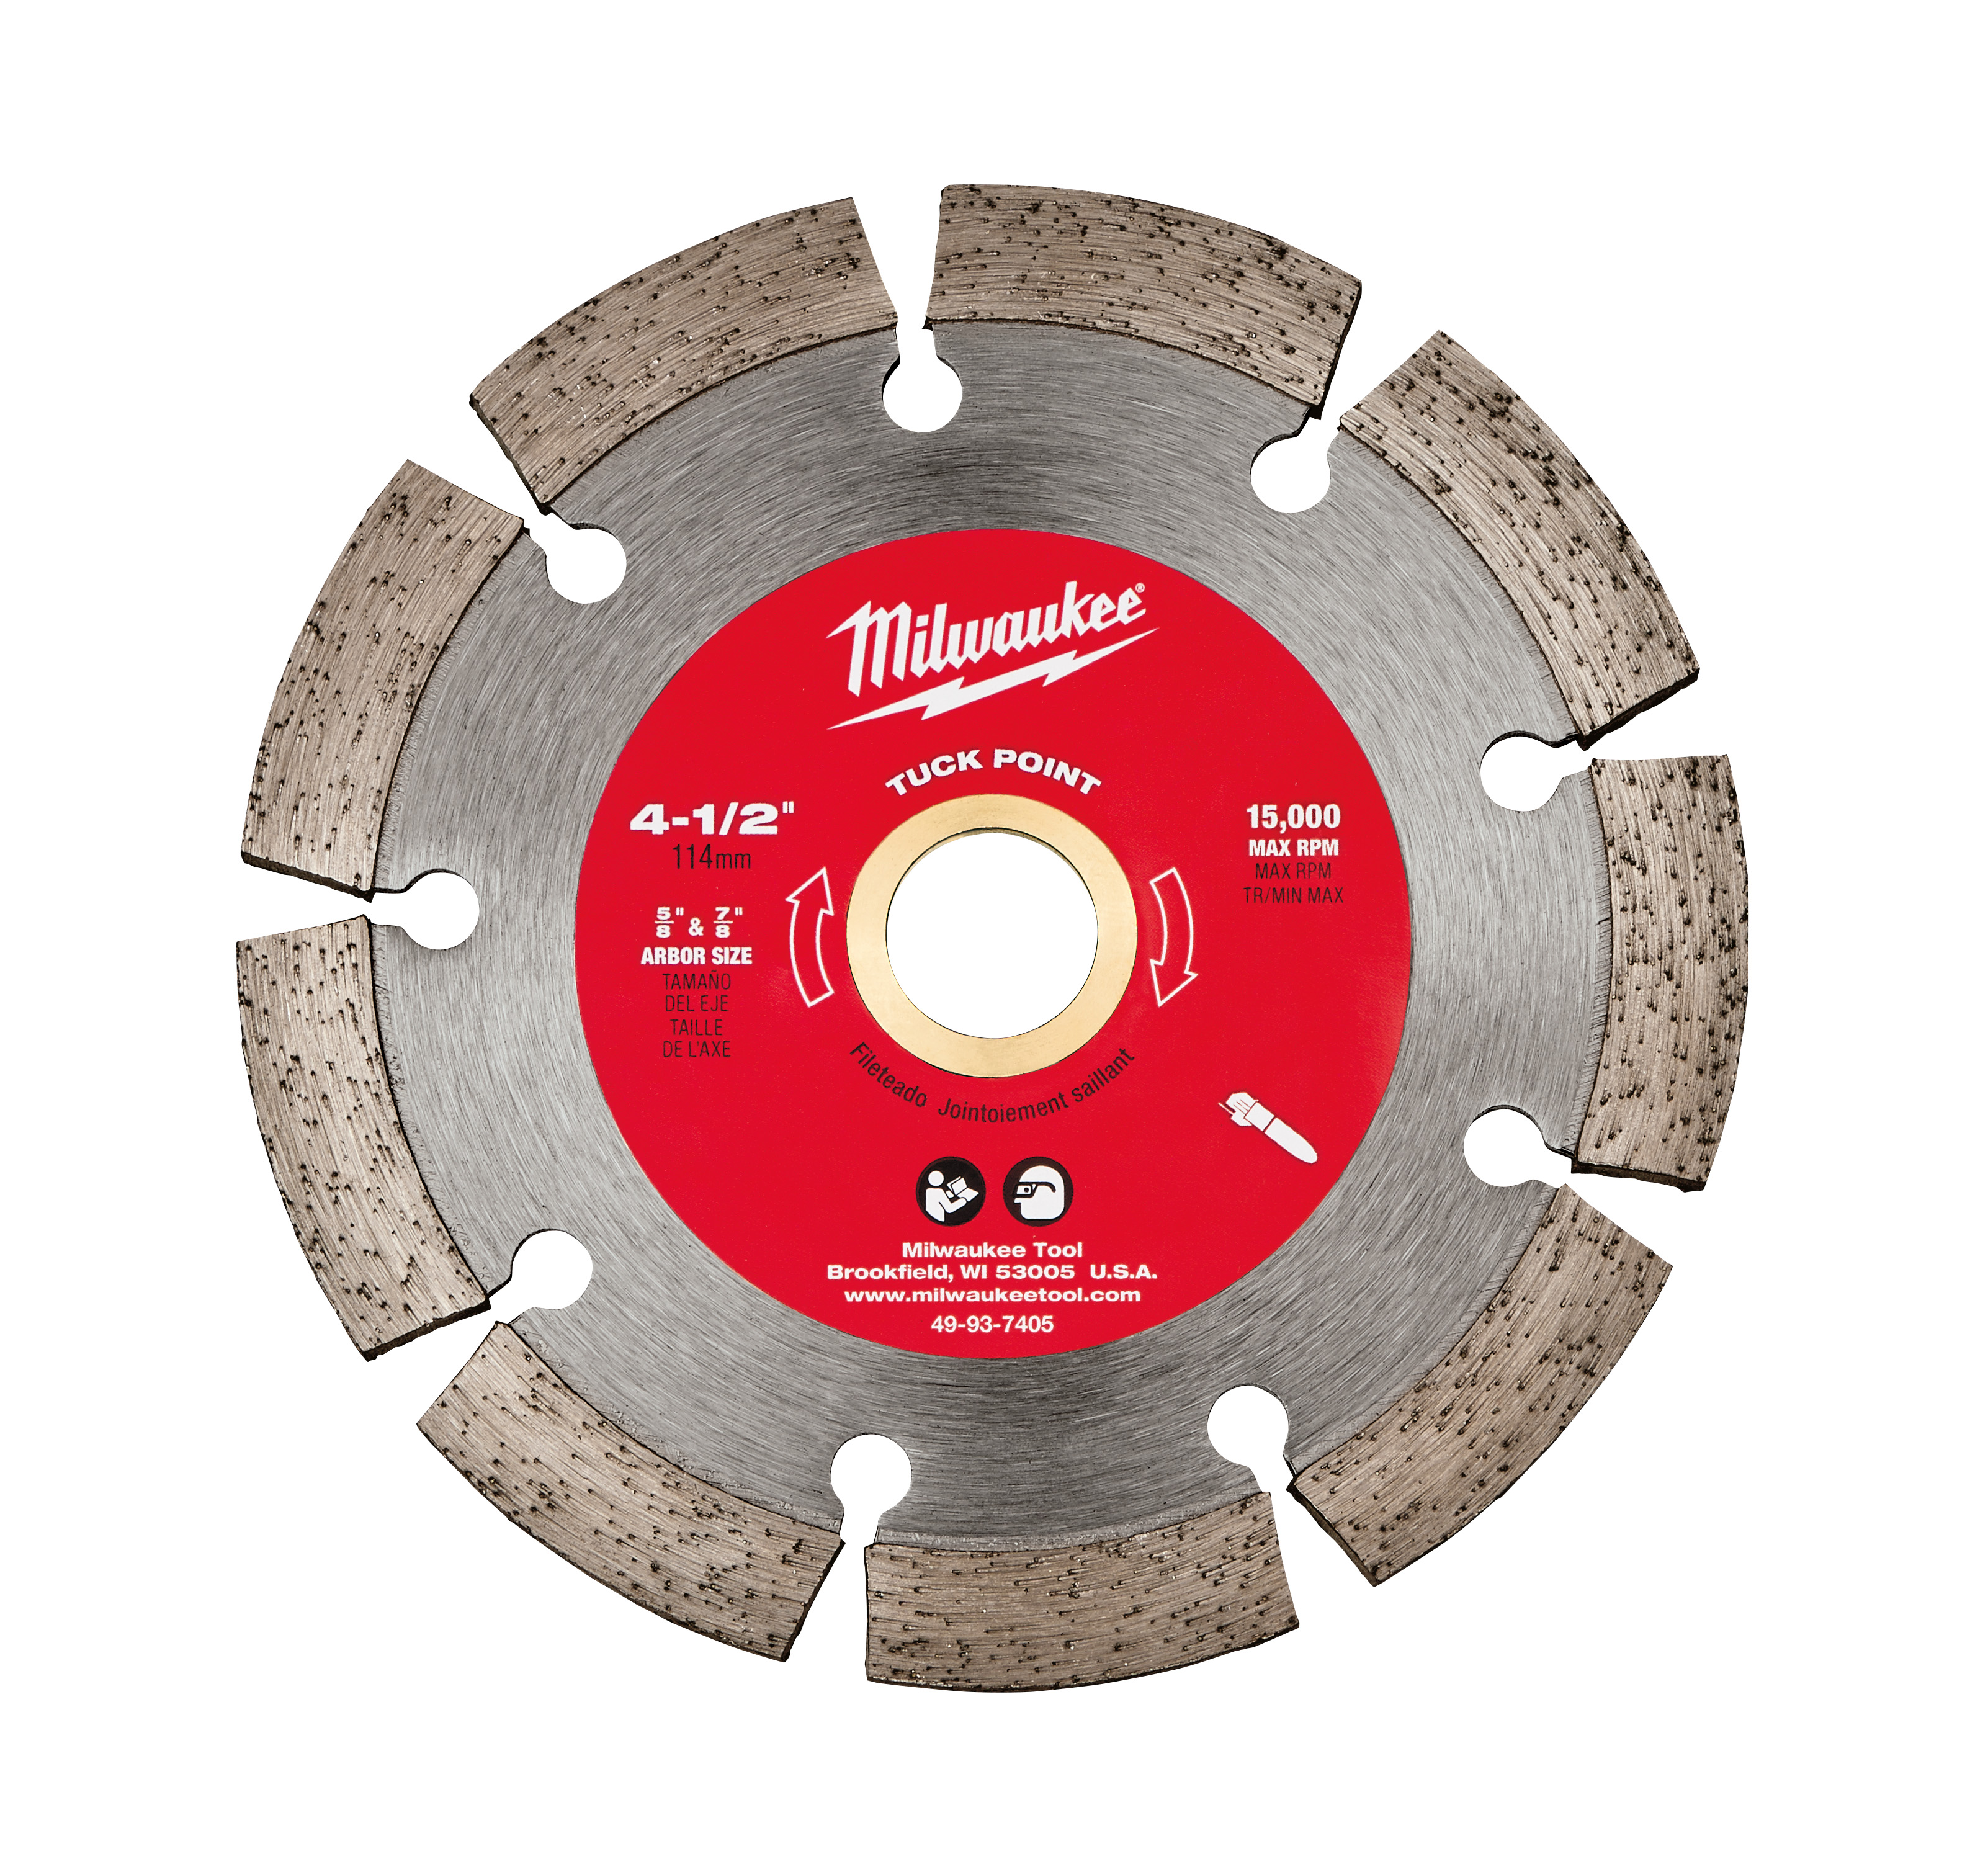 Milwaukee® 49-93-7405 Segmented Diamond Blade, 4-1/2 in Dia Blade, 1/4 in W, 5/8 to 7/8 in Arbor/Shank, Dry/Wet Cutting